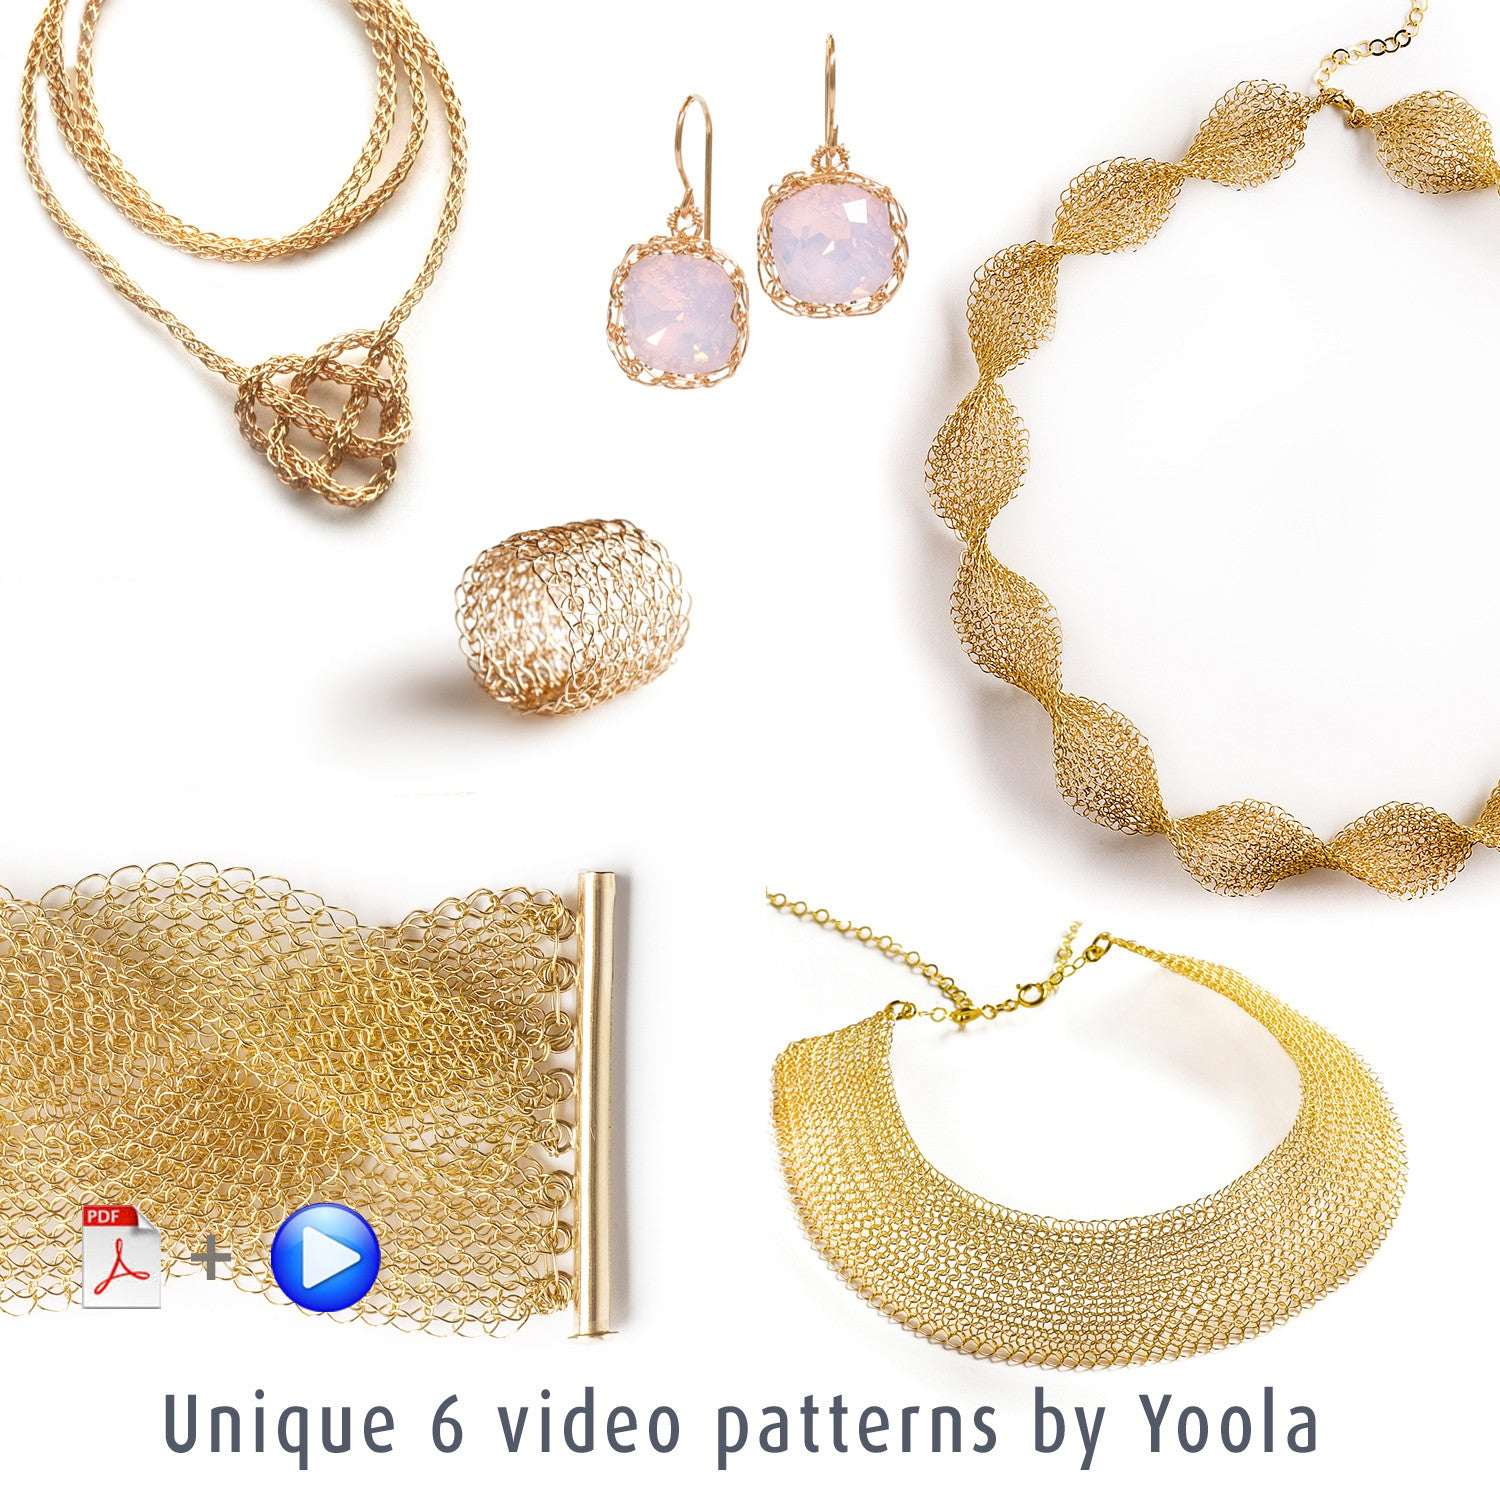 Jumbo wire crochet video tutorials combination package -yoola ...